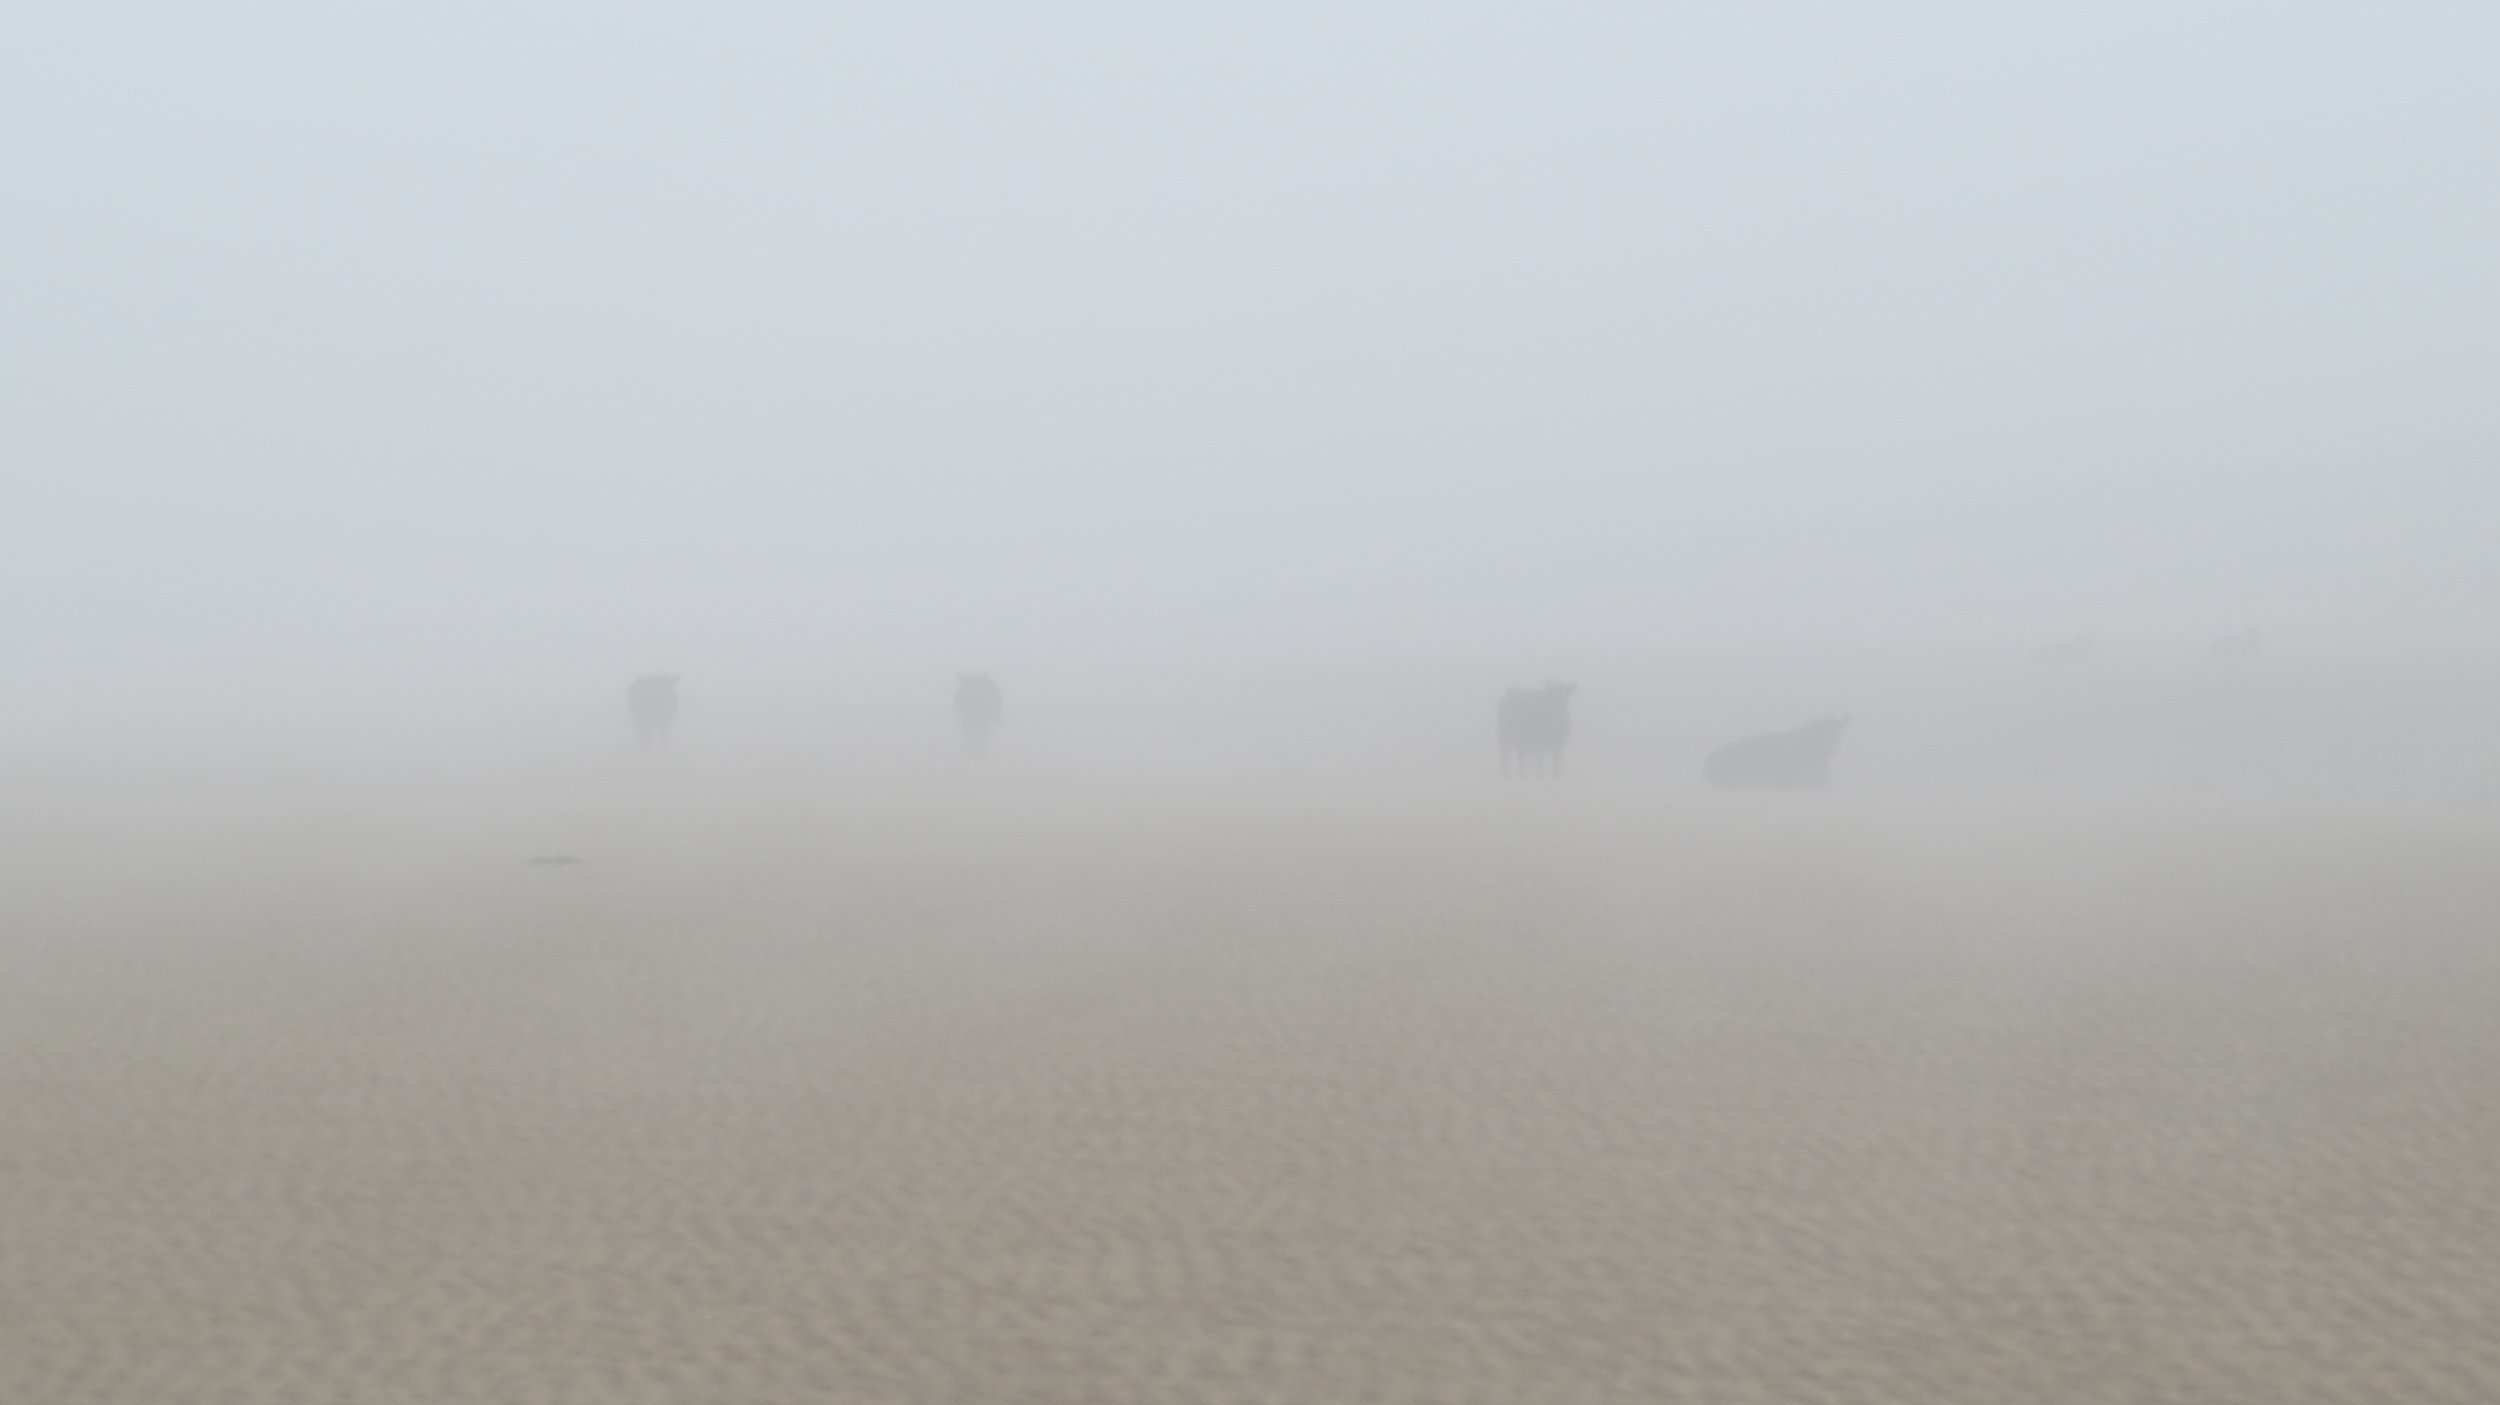 Cows on Beach through Haze